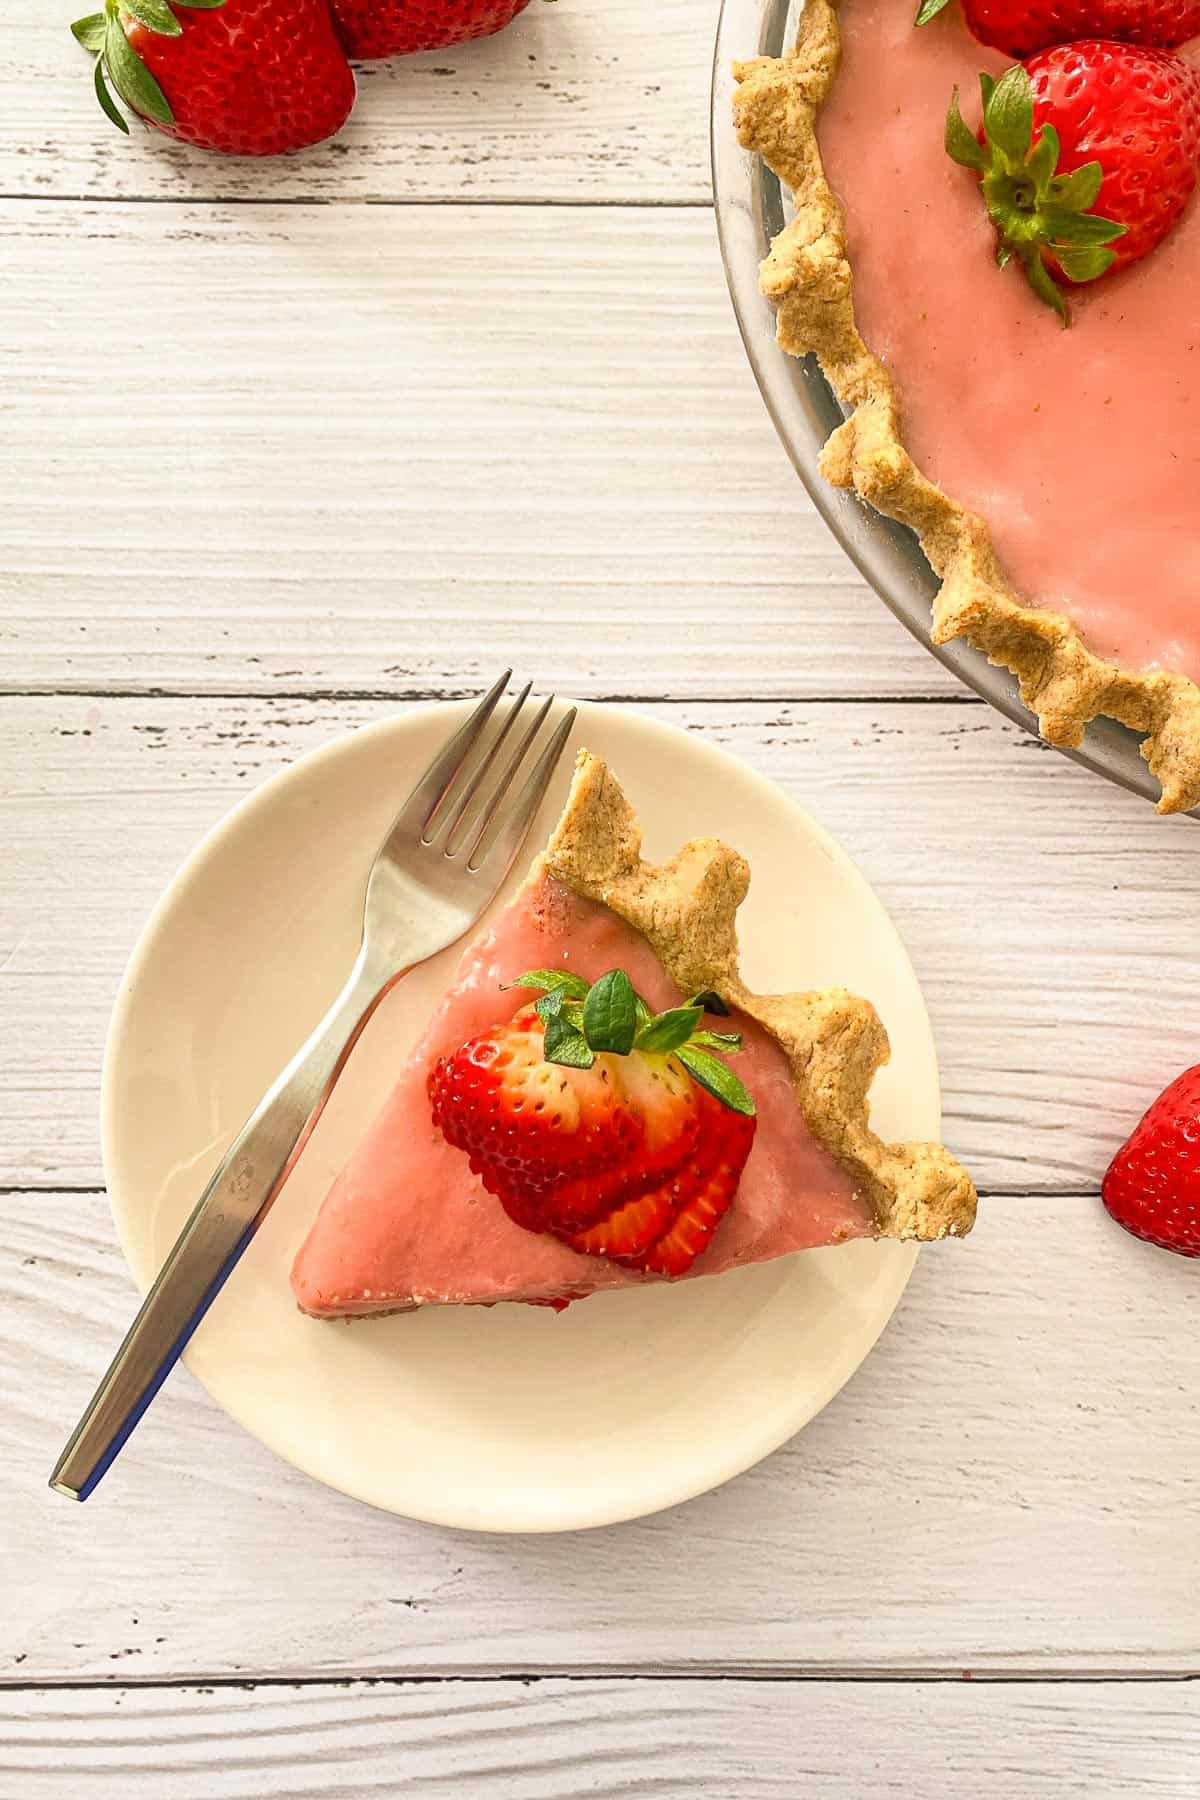 Overhead view of slice of pie in plate with strawberry slices on top.